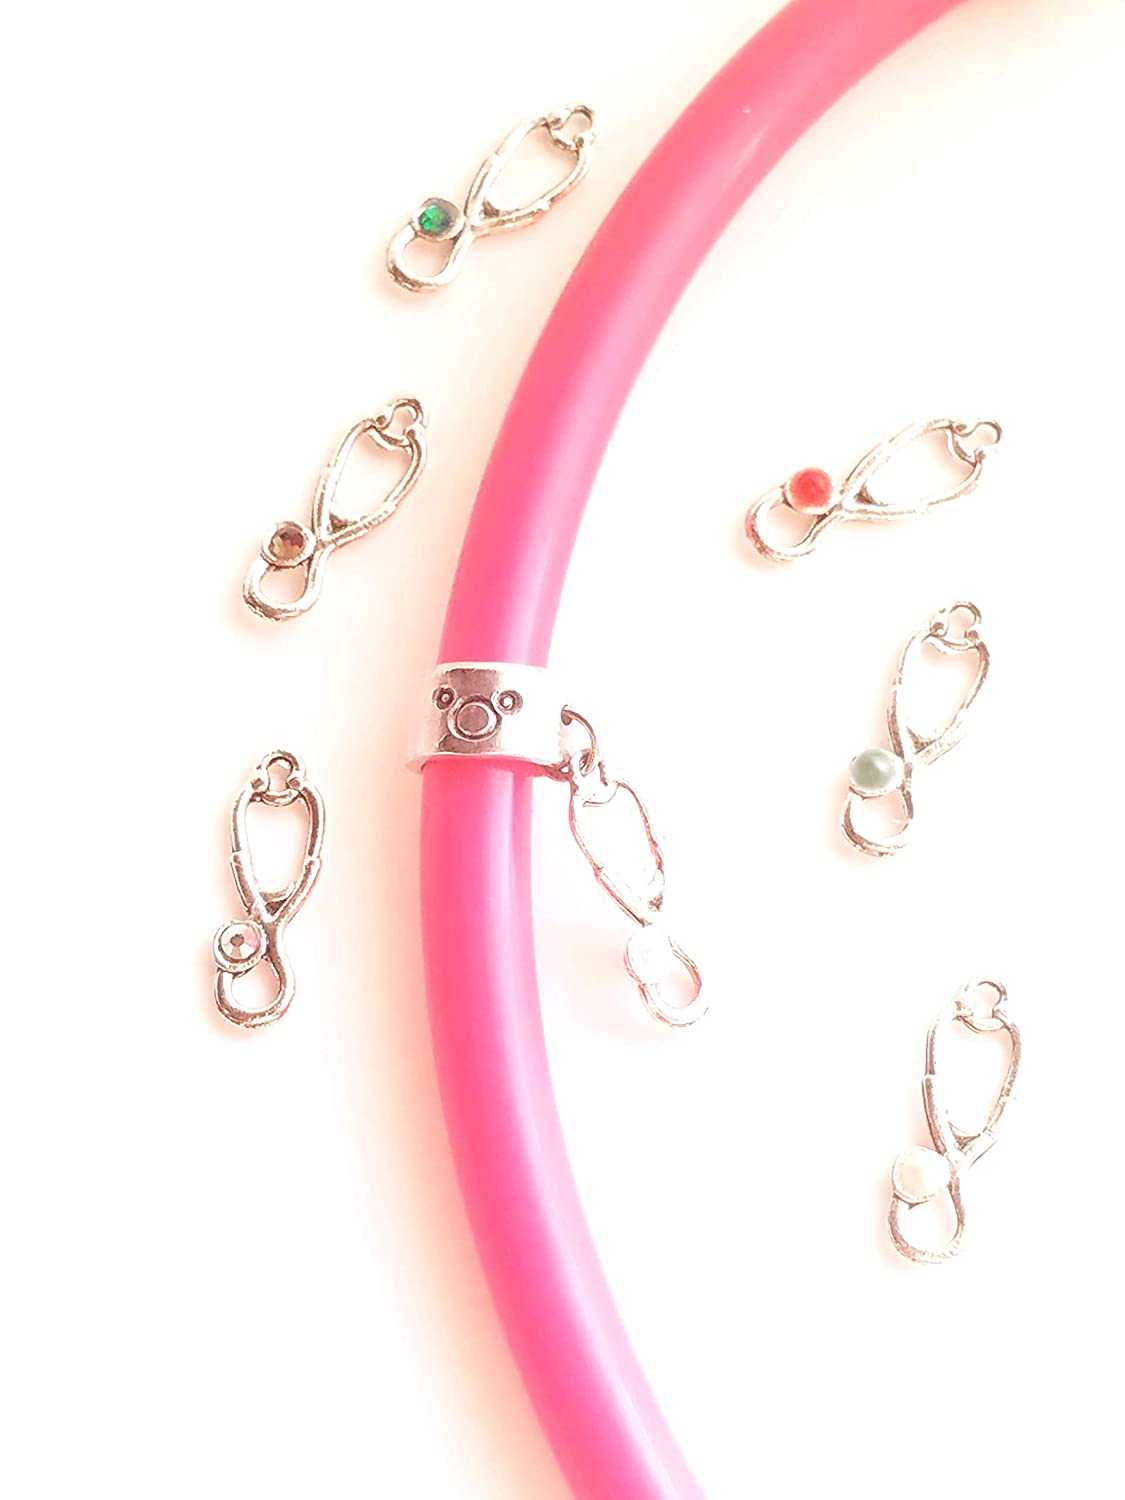 Custom Stethoscope Charm Personalized ID Ring Tri Colored Stethoscope Charms Rose Gold Charms Set of 3 Stethoscope Charm Rings